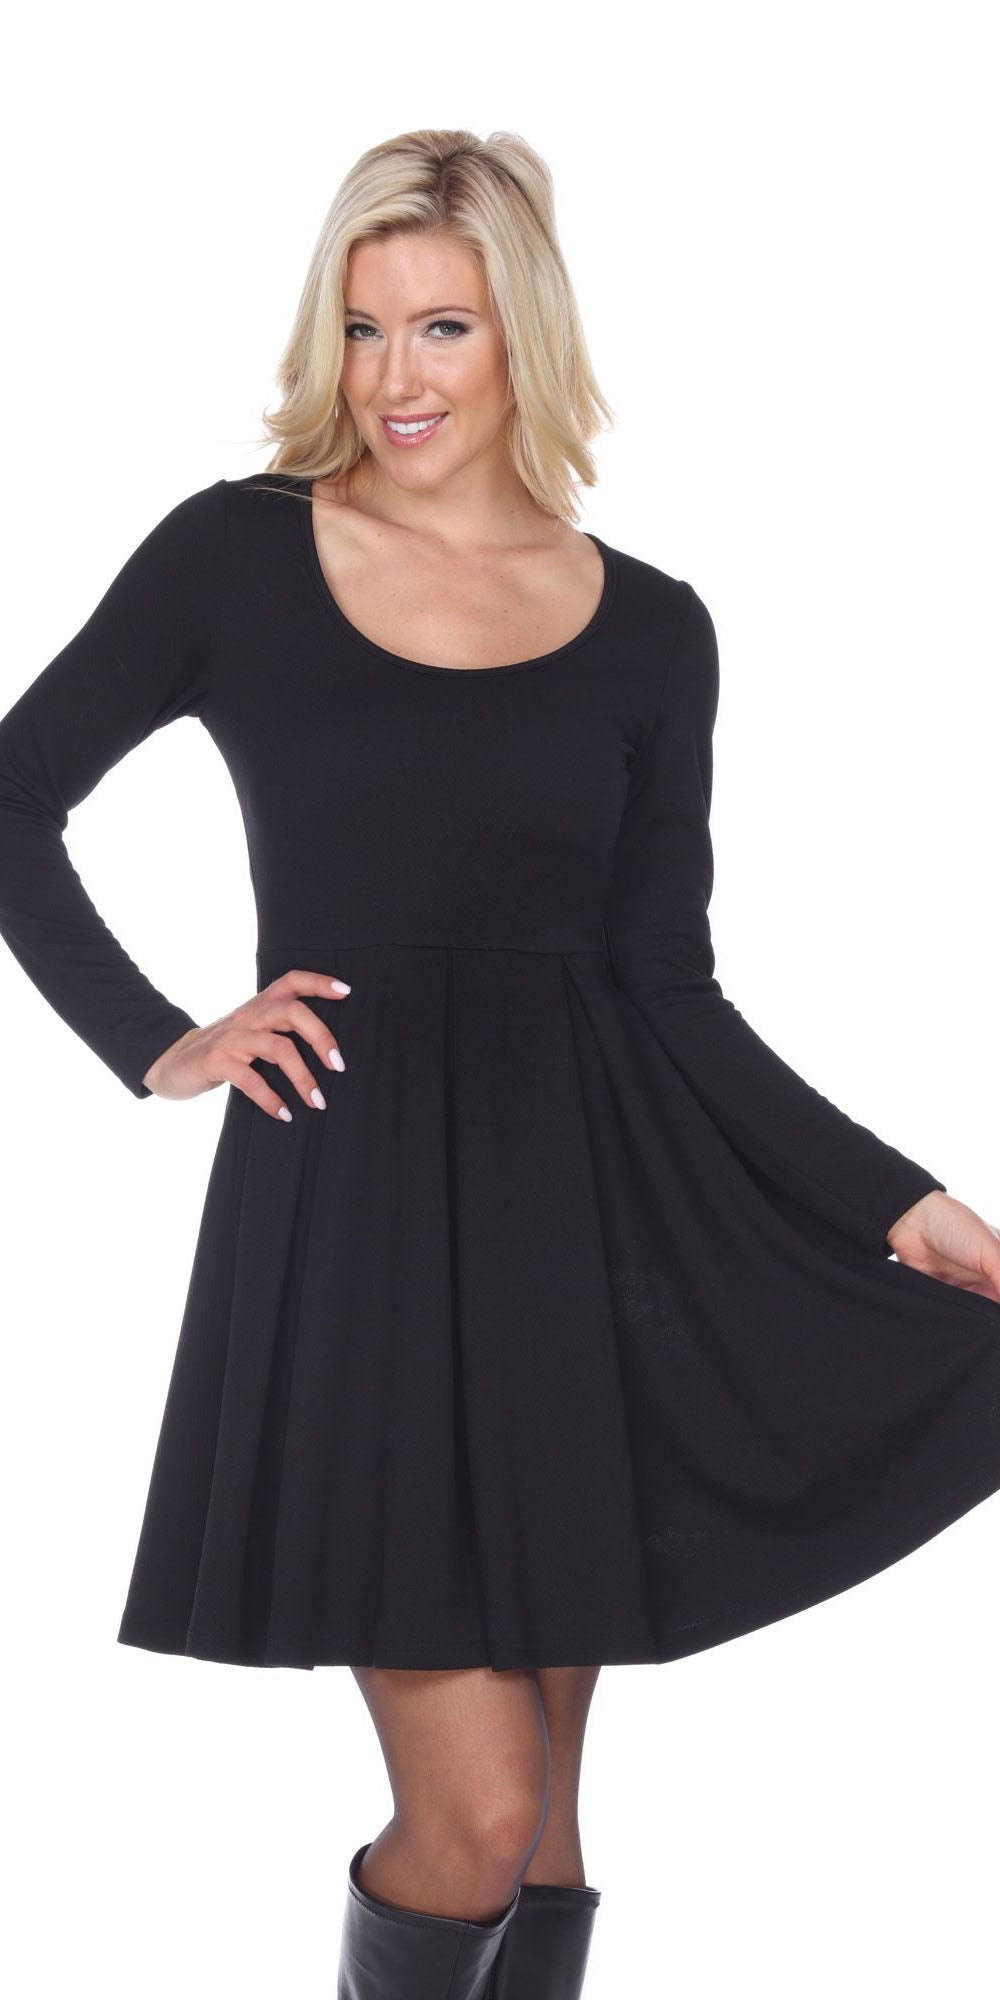 a75158e9a8c Jenara Dress Black Short Fit/Flare Dress Long Sleeves ...